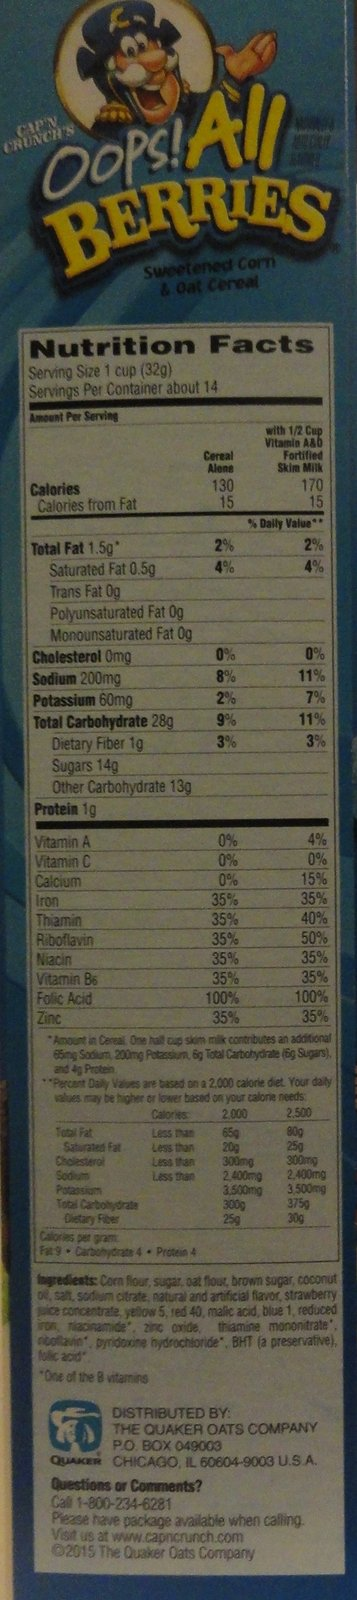 Quaker Oats Cap N Crunch Oops All Berries Nutrition Facts You can use fresh or frozen berries, so this recipe is tasty no matter the season! quaker oats cap n crunch oops all